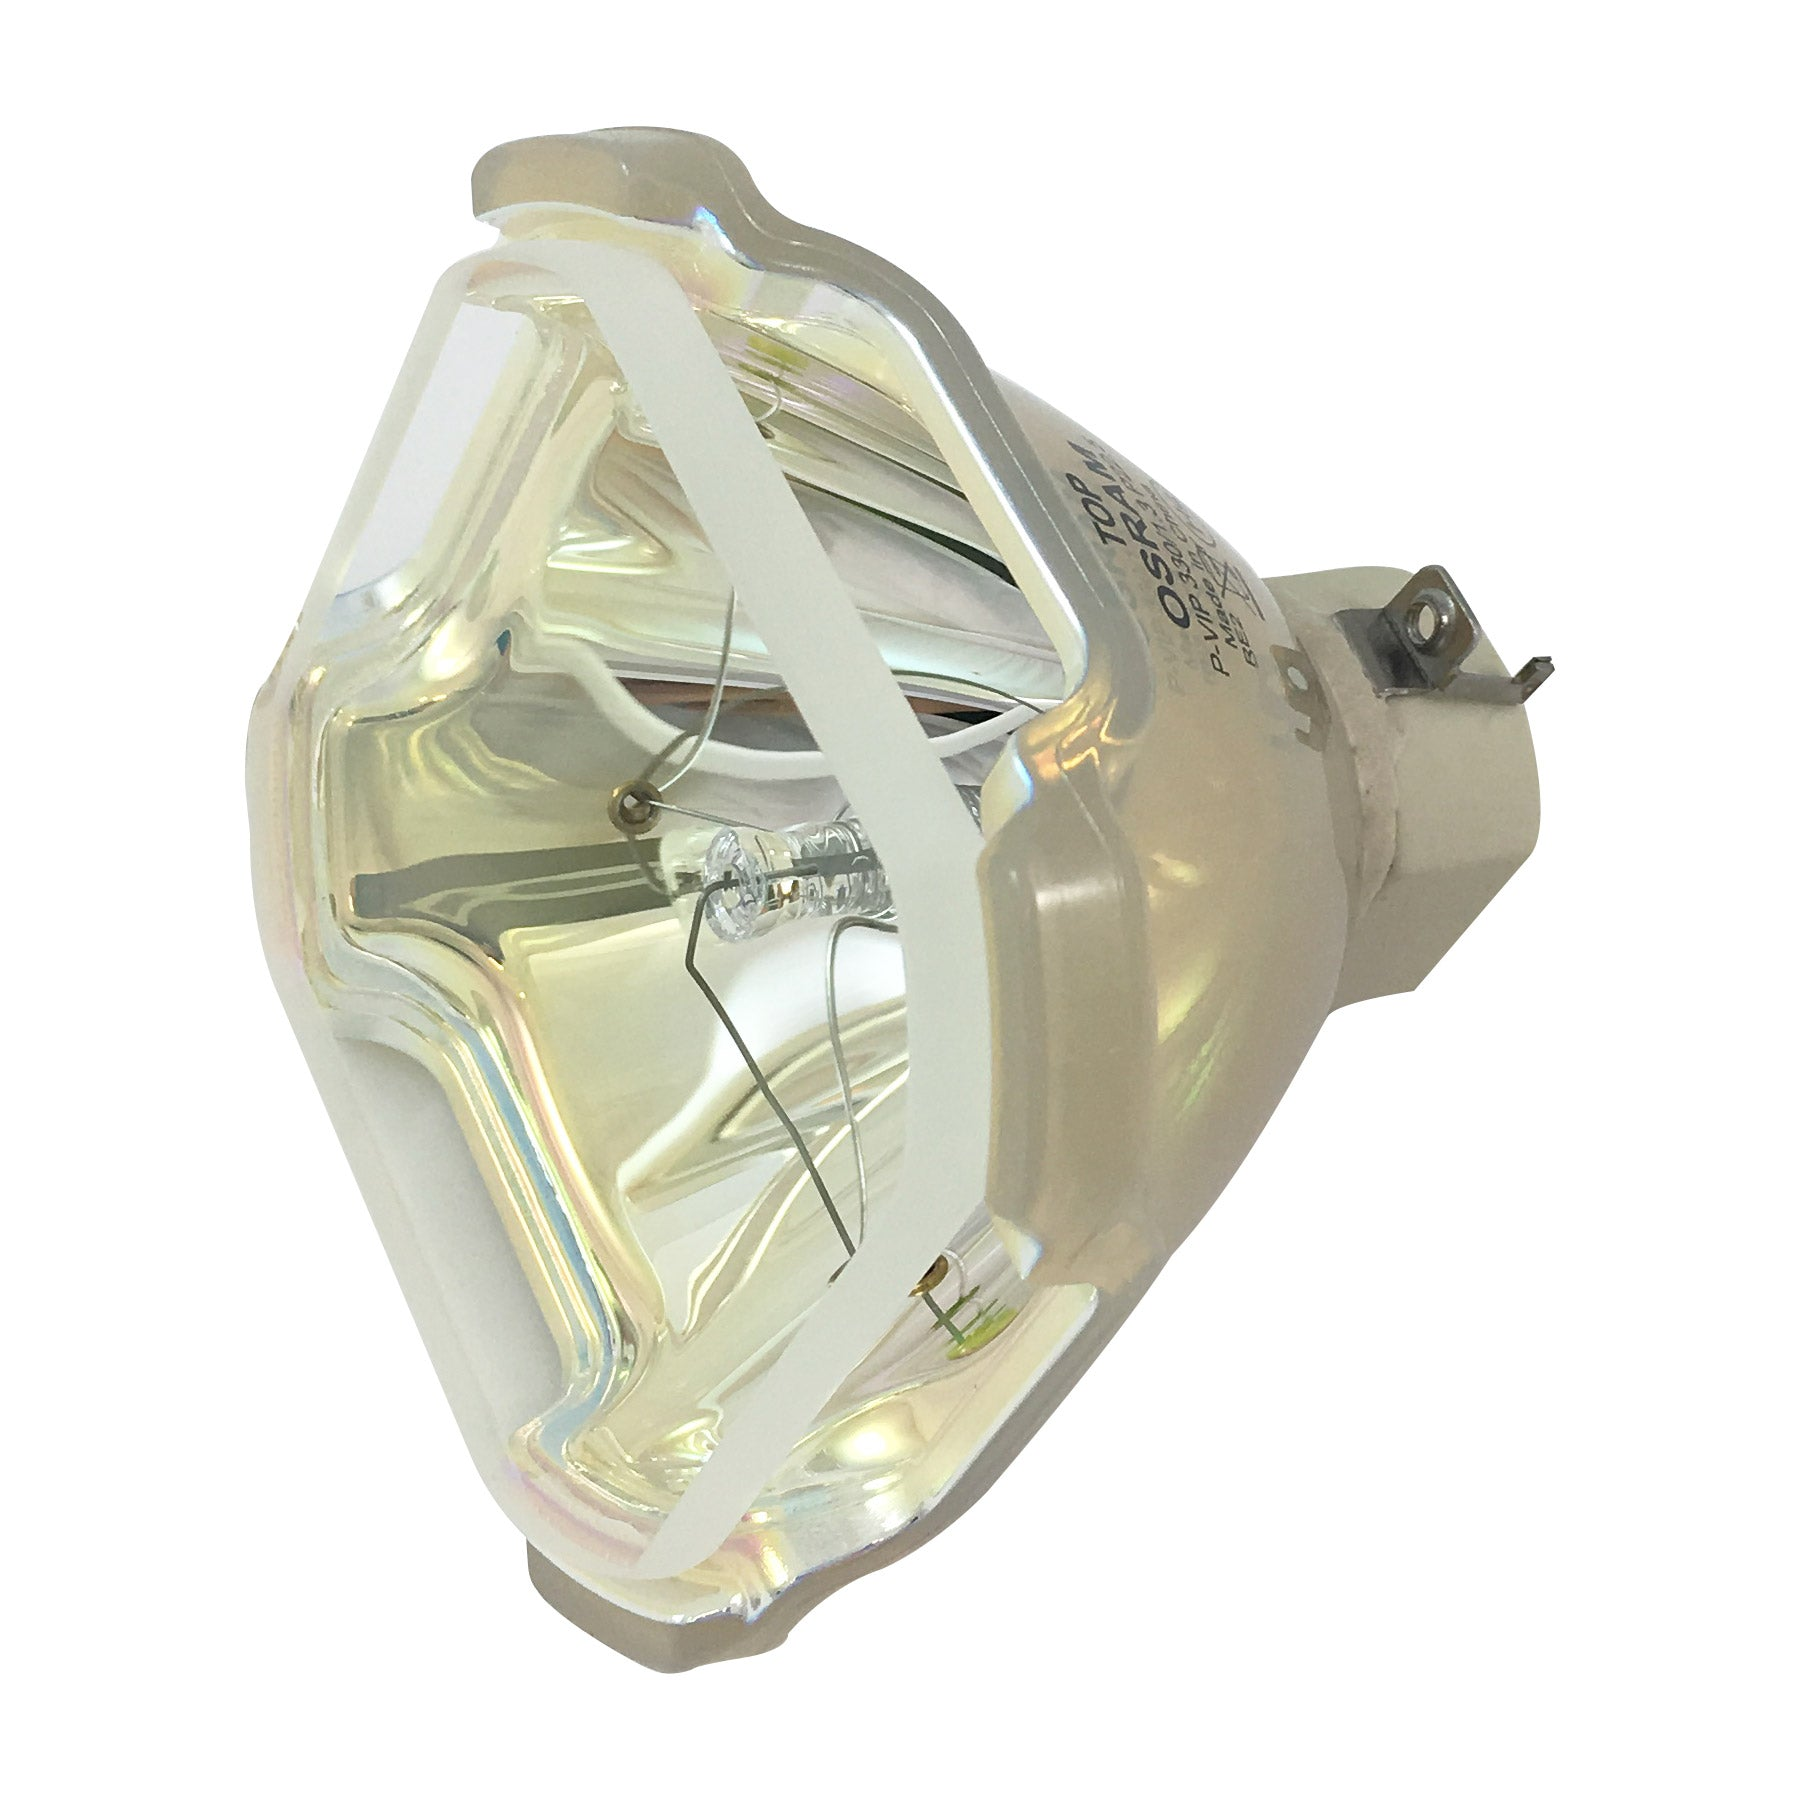 Osram P-VIP 330/1.3 P22.5 Projector High Quality Original Projector Bulb